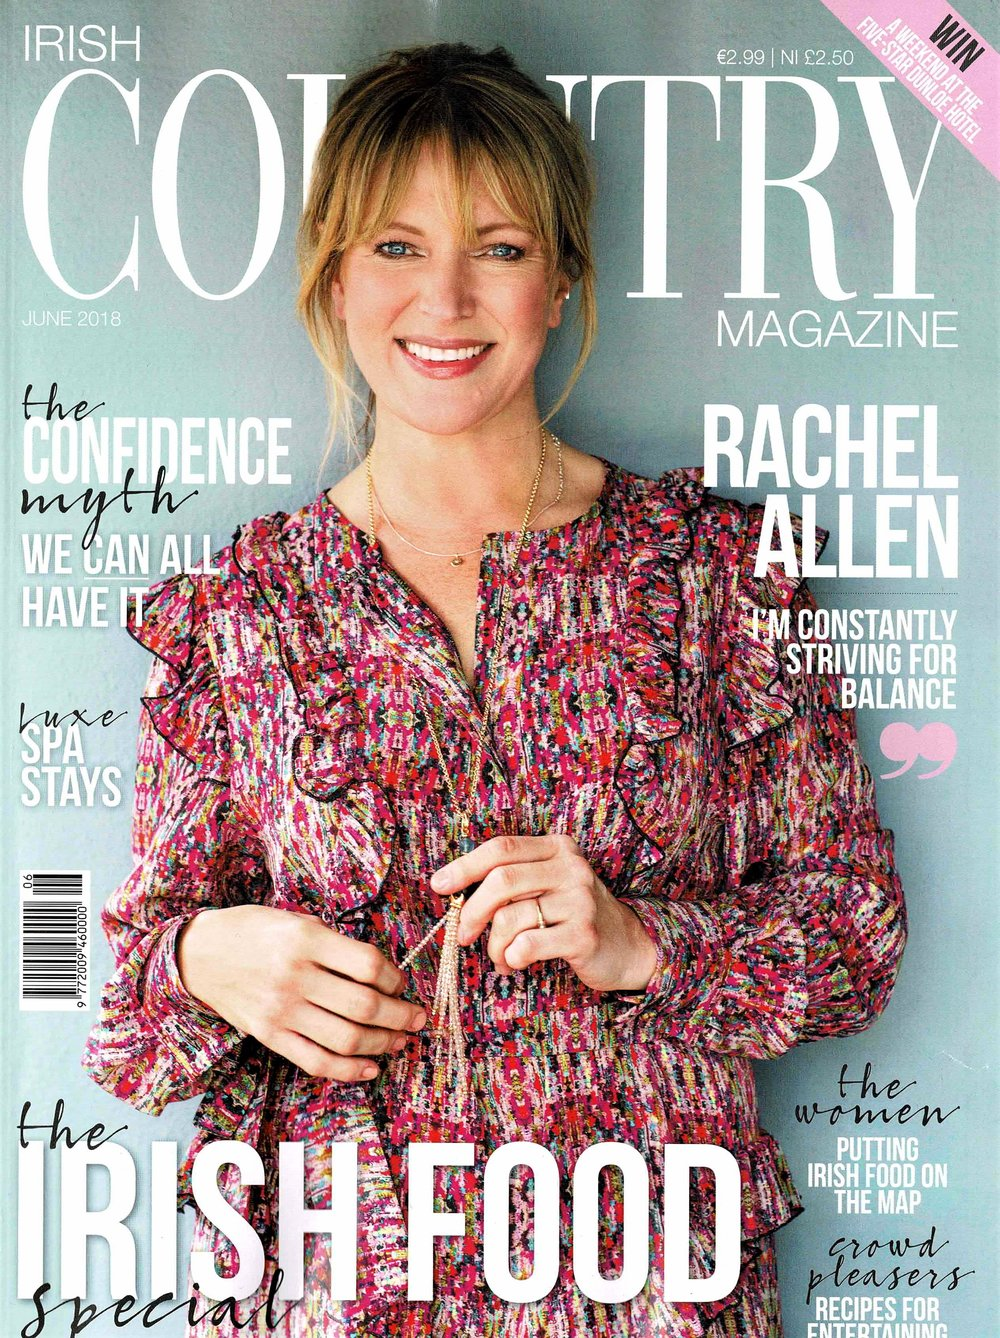 Irish Country Magazine June 2018